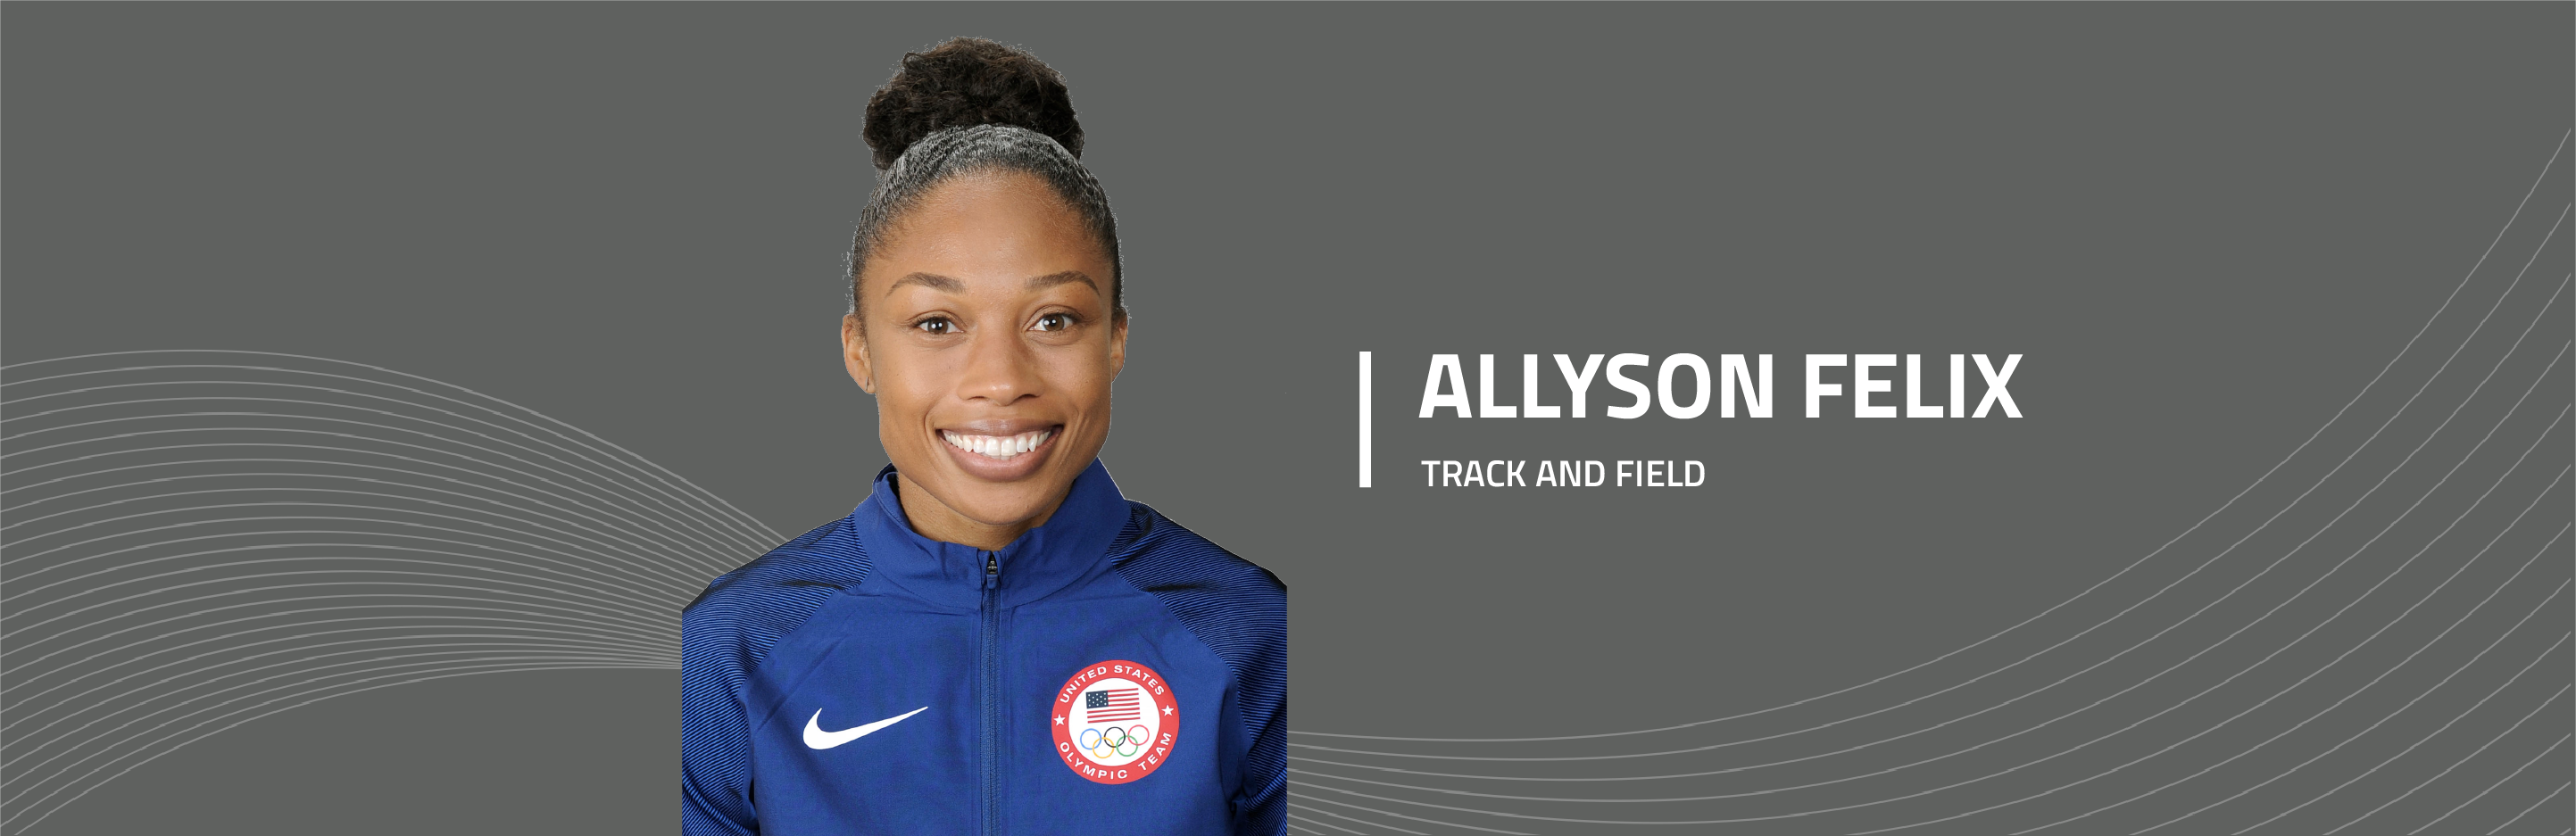 Allyson Felix team Bridgestone Olympic athlete